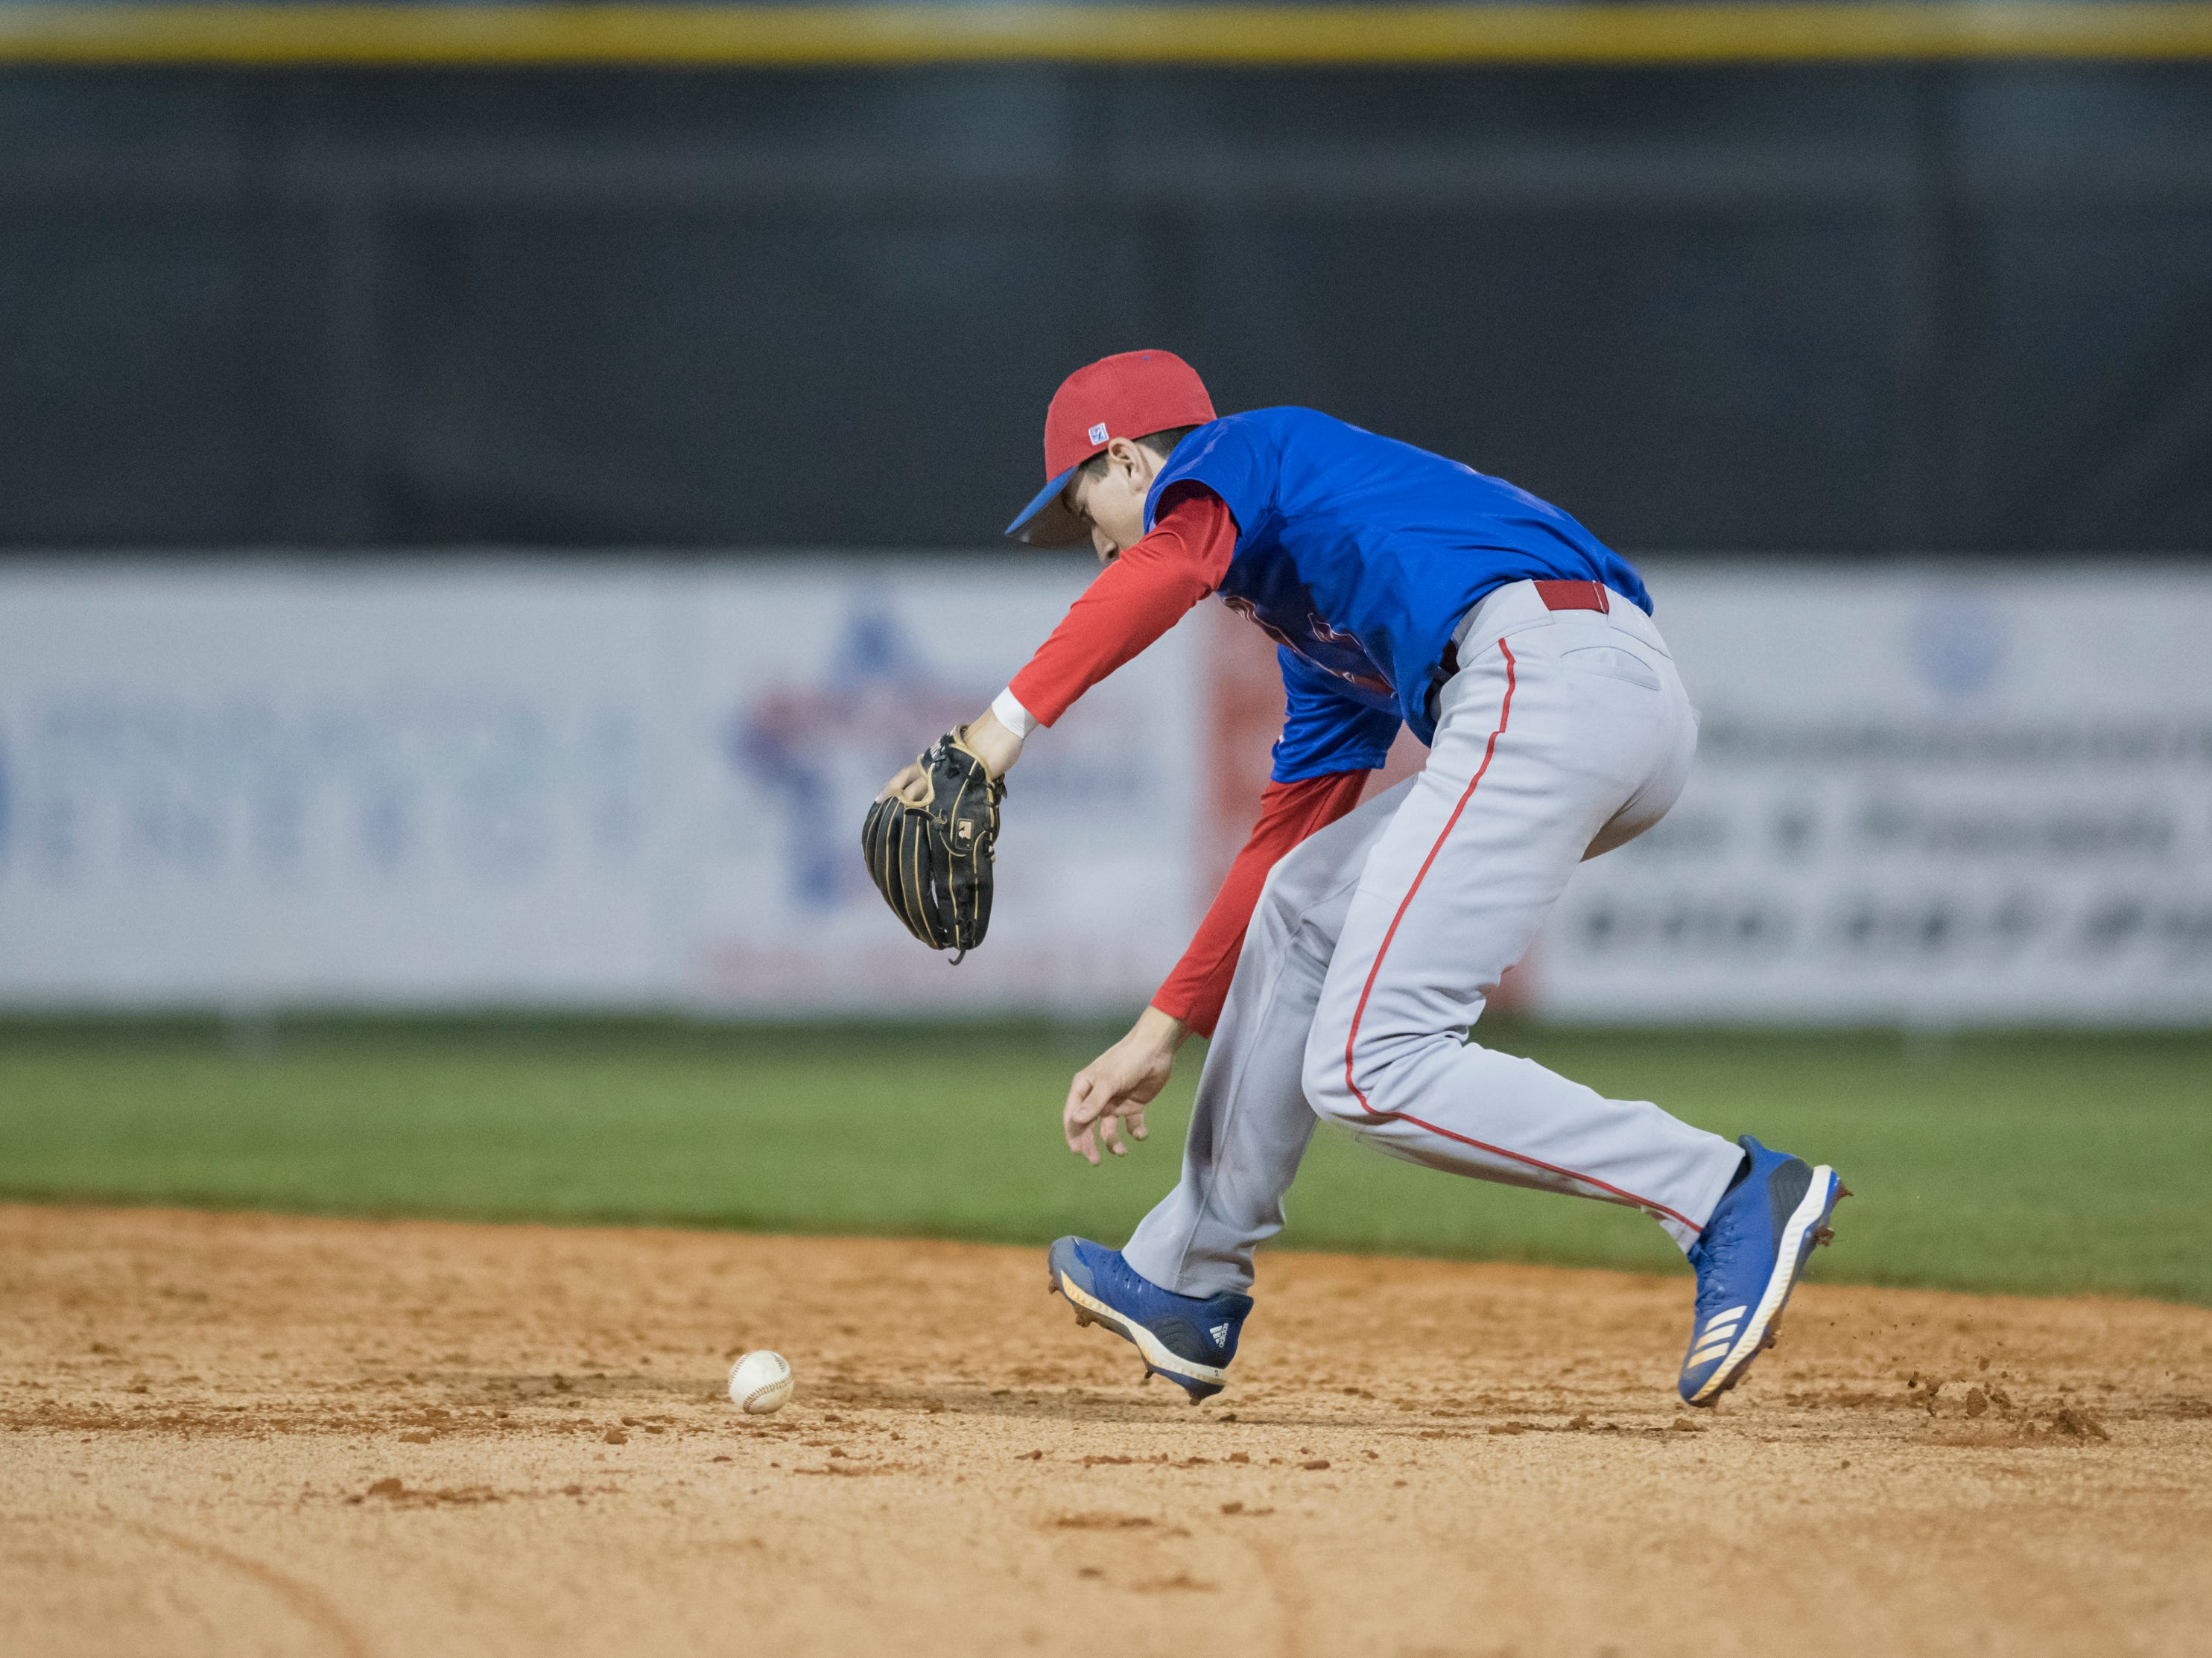 Second baseman John Pinette (2) plays a grounder to make the 2nd out in the bottom of the 1st inning during the Pine Forest vs Tate baseball game at Tate High School on Thursday, March 7, 2019.  The Aggies won 4-3.